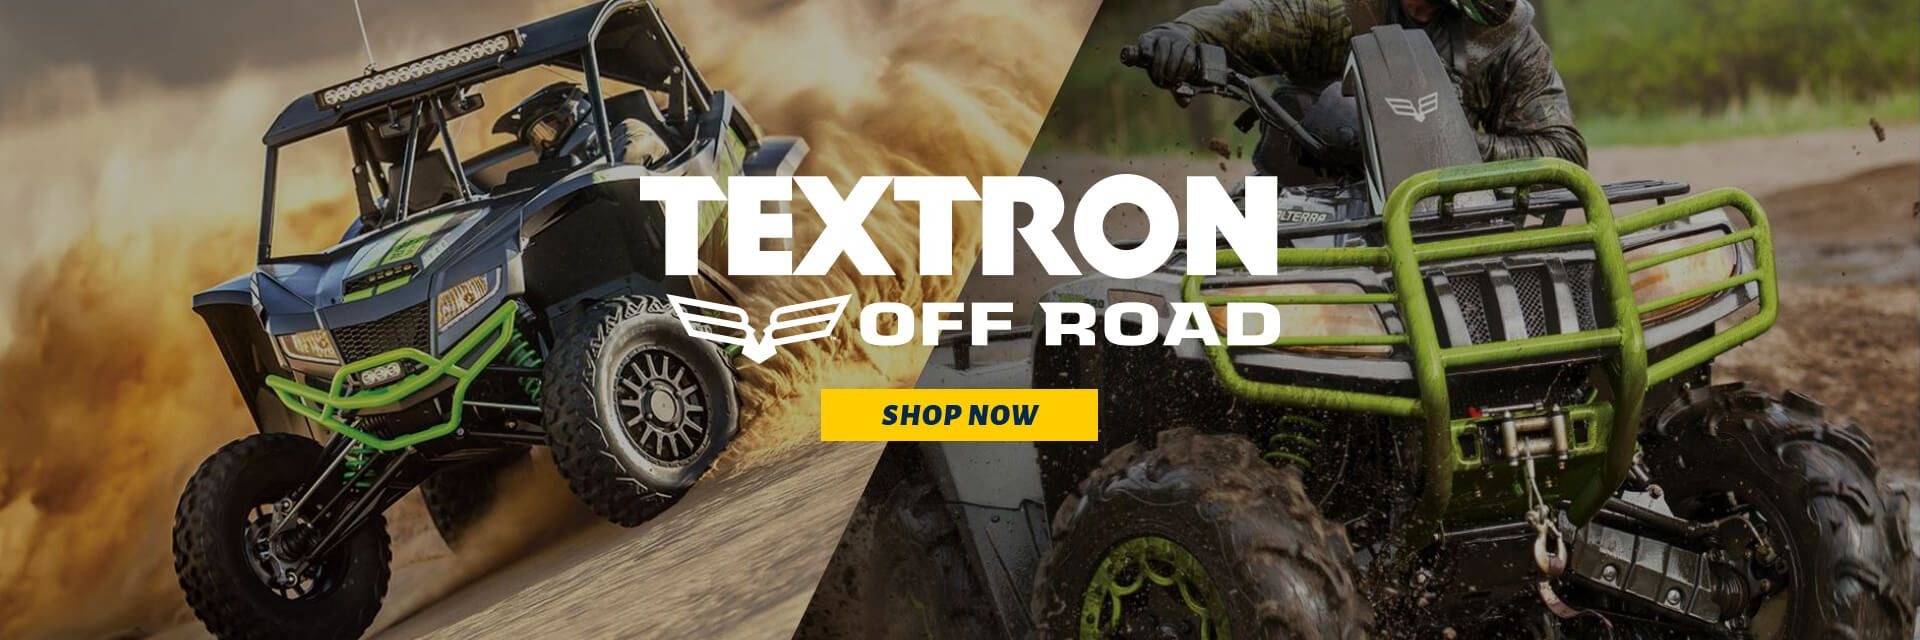 Shop Textron Off Road Vehicles For Sale at Harper Cycle & Marine in Hendersonville, NC